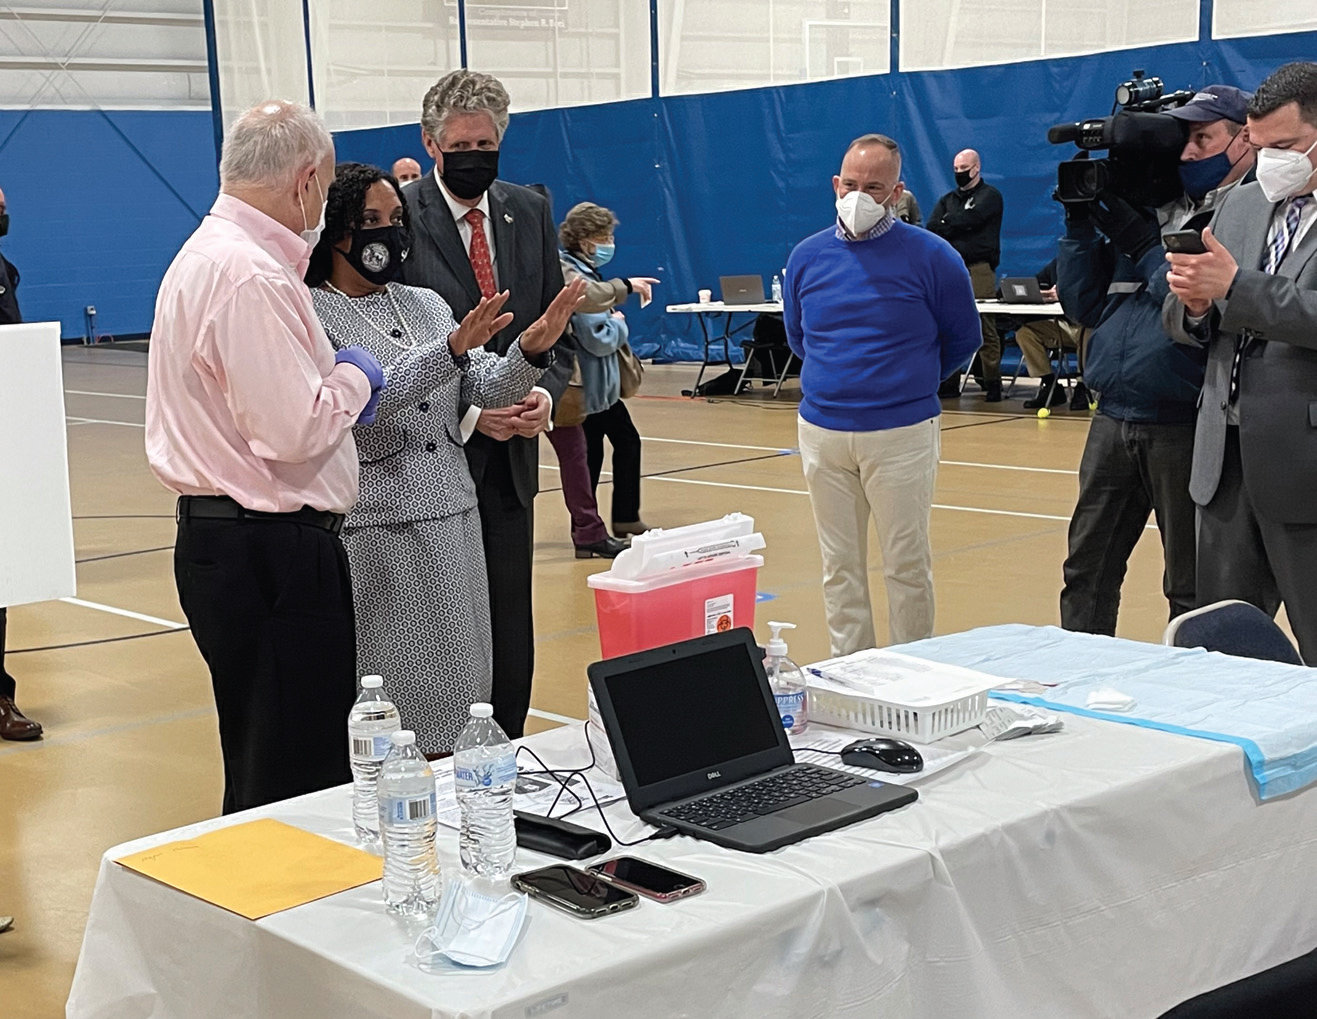 STEPPING UP: Providence City Council President Sabina Matos, center, visits the COVID-19 vaccination clinic at the Johnston Recreation Center on Wednesday. Looking on are Johnston Mayor Joseph Polisena, left, and Gov. Dan McKee.